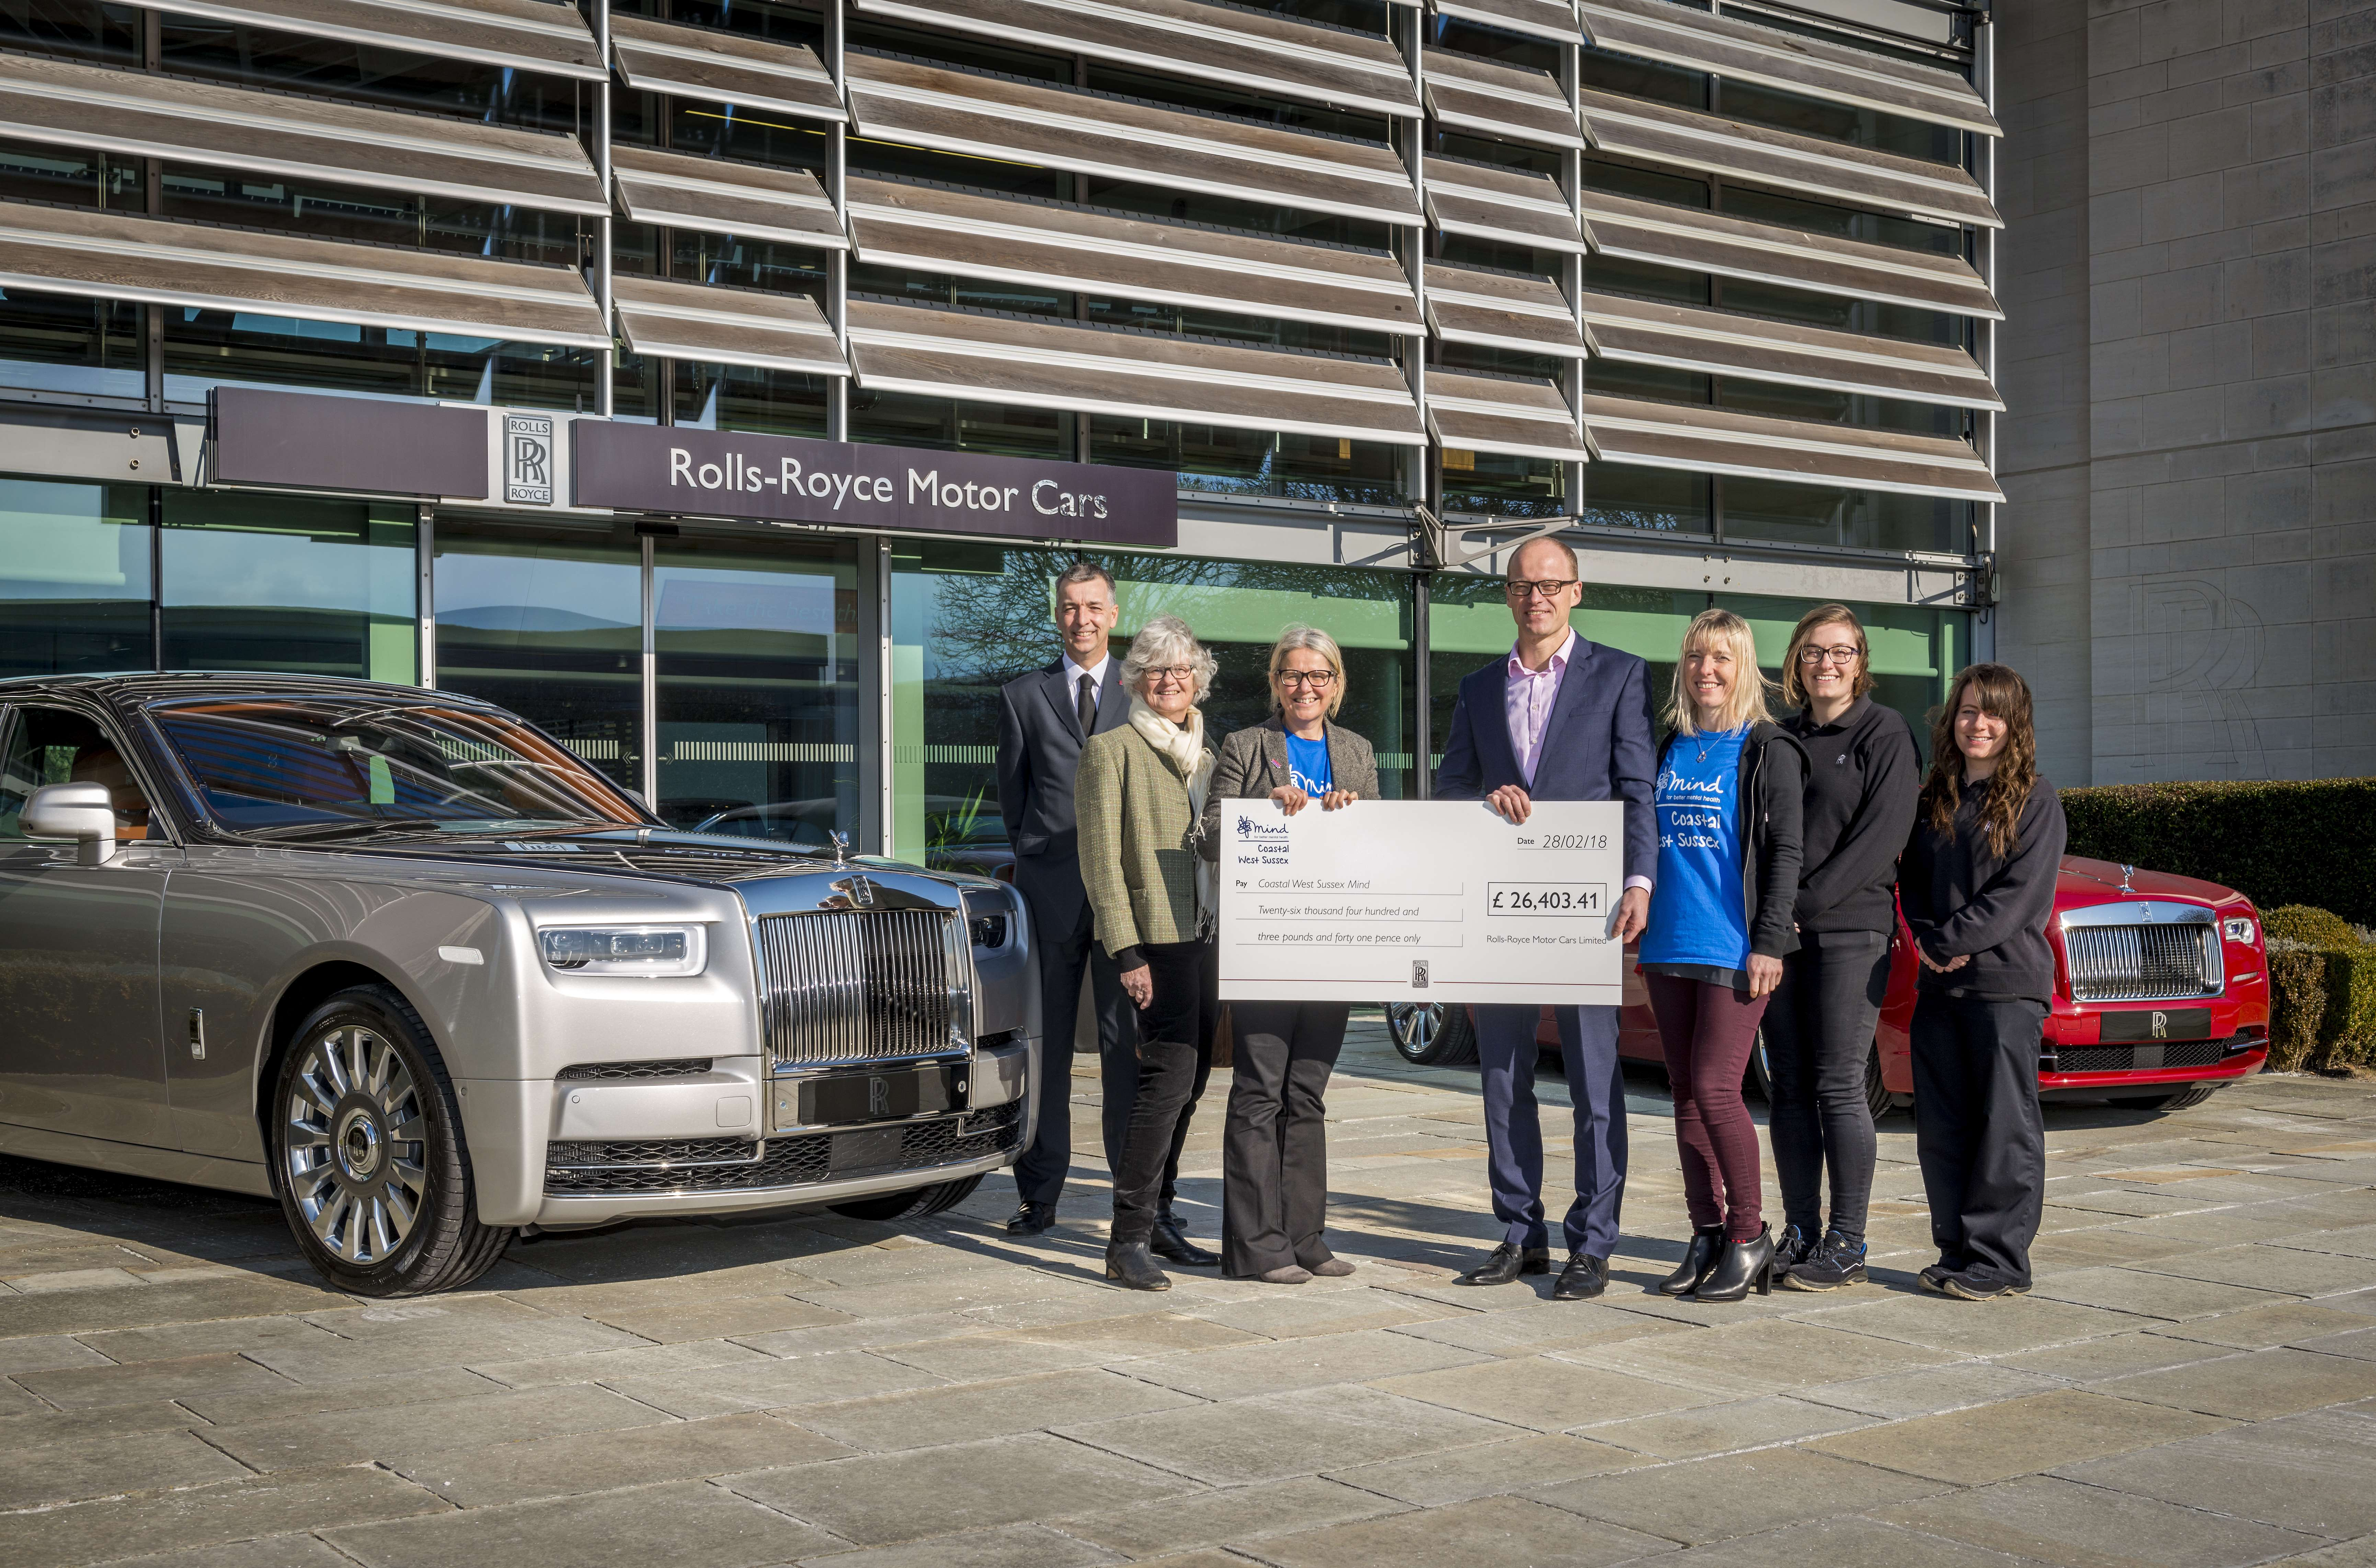 ROLLS-ROYCE MOTOR CARS CELEBRATES SUCCESSFUL YEAR OF FUNDRAISING FOR COASTAL WEST SUSSEX MIND